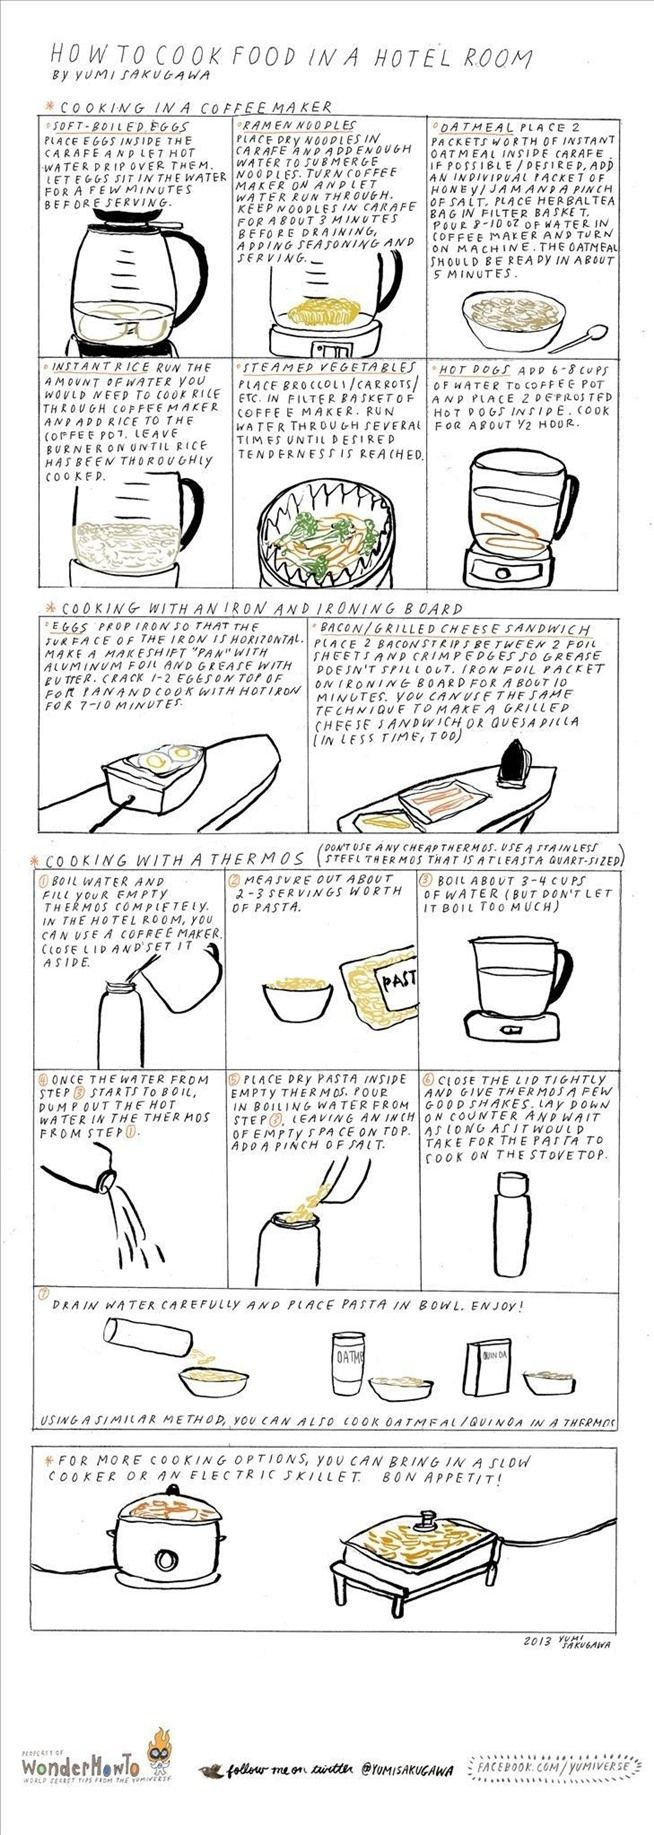 10 Easy Recipe Hacks for Cooking Food in Your Hotel Room « The Secret Yumiverse